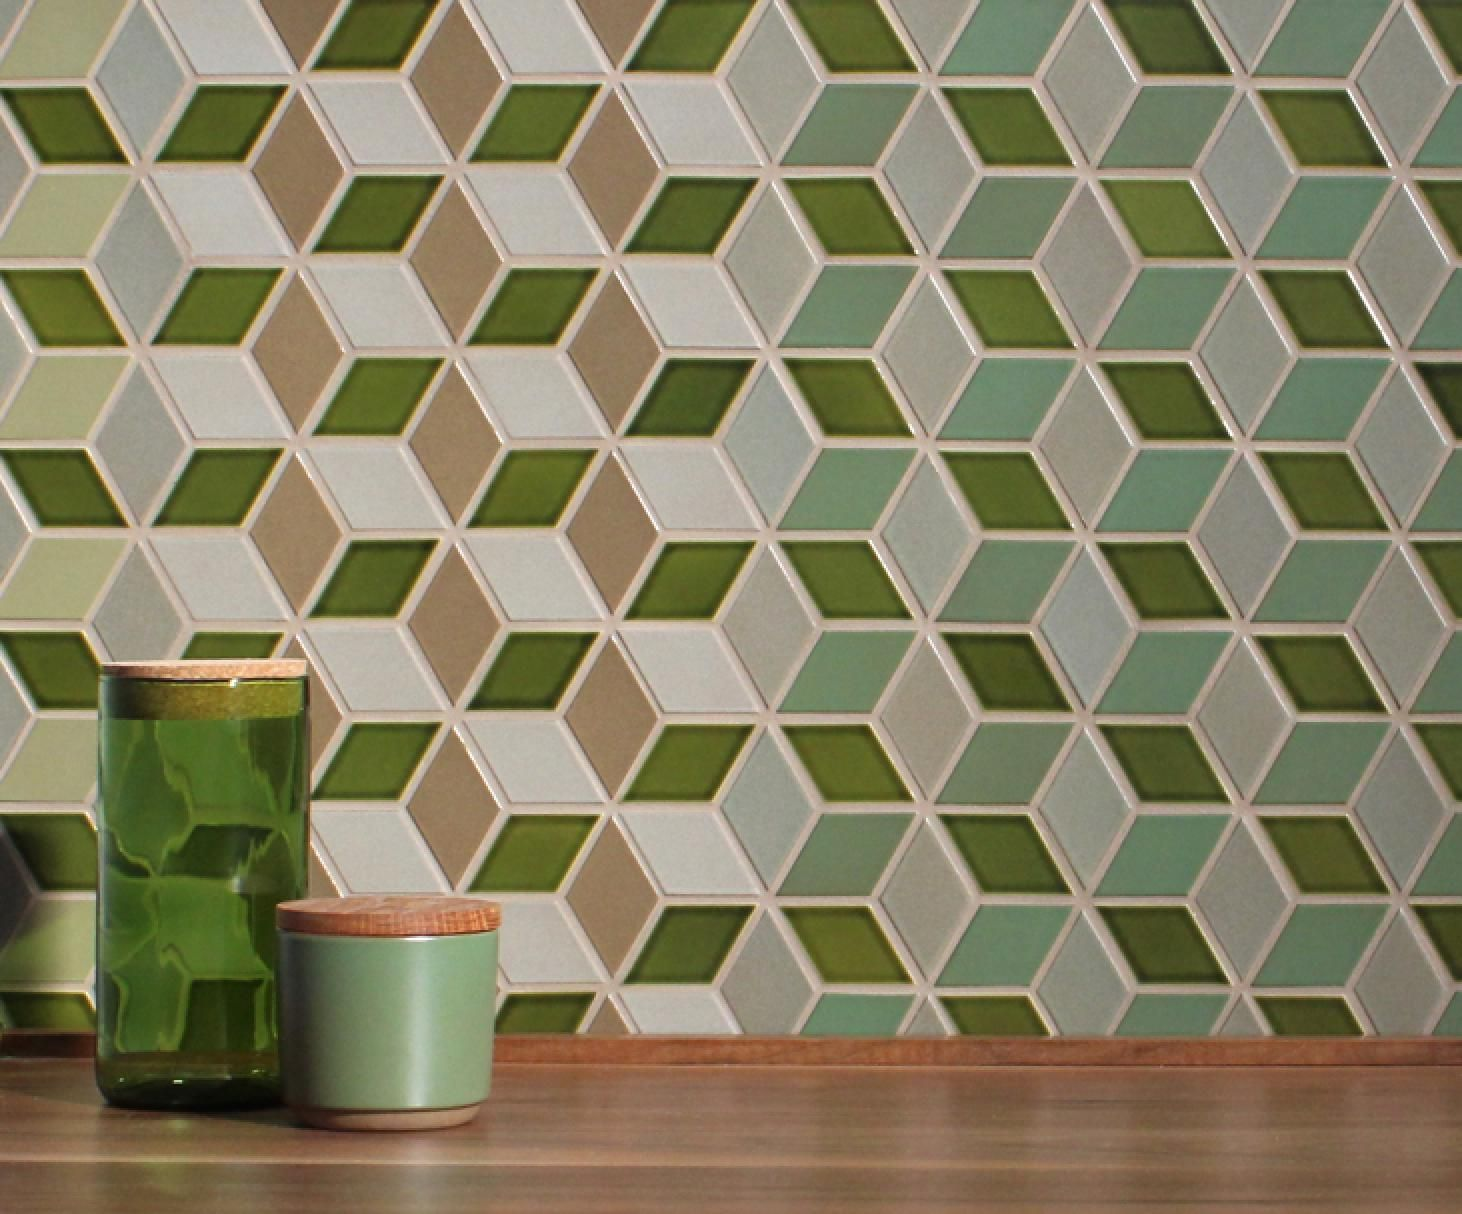 Installation Inspiration - Heath Ceramics